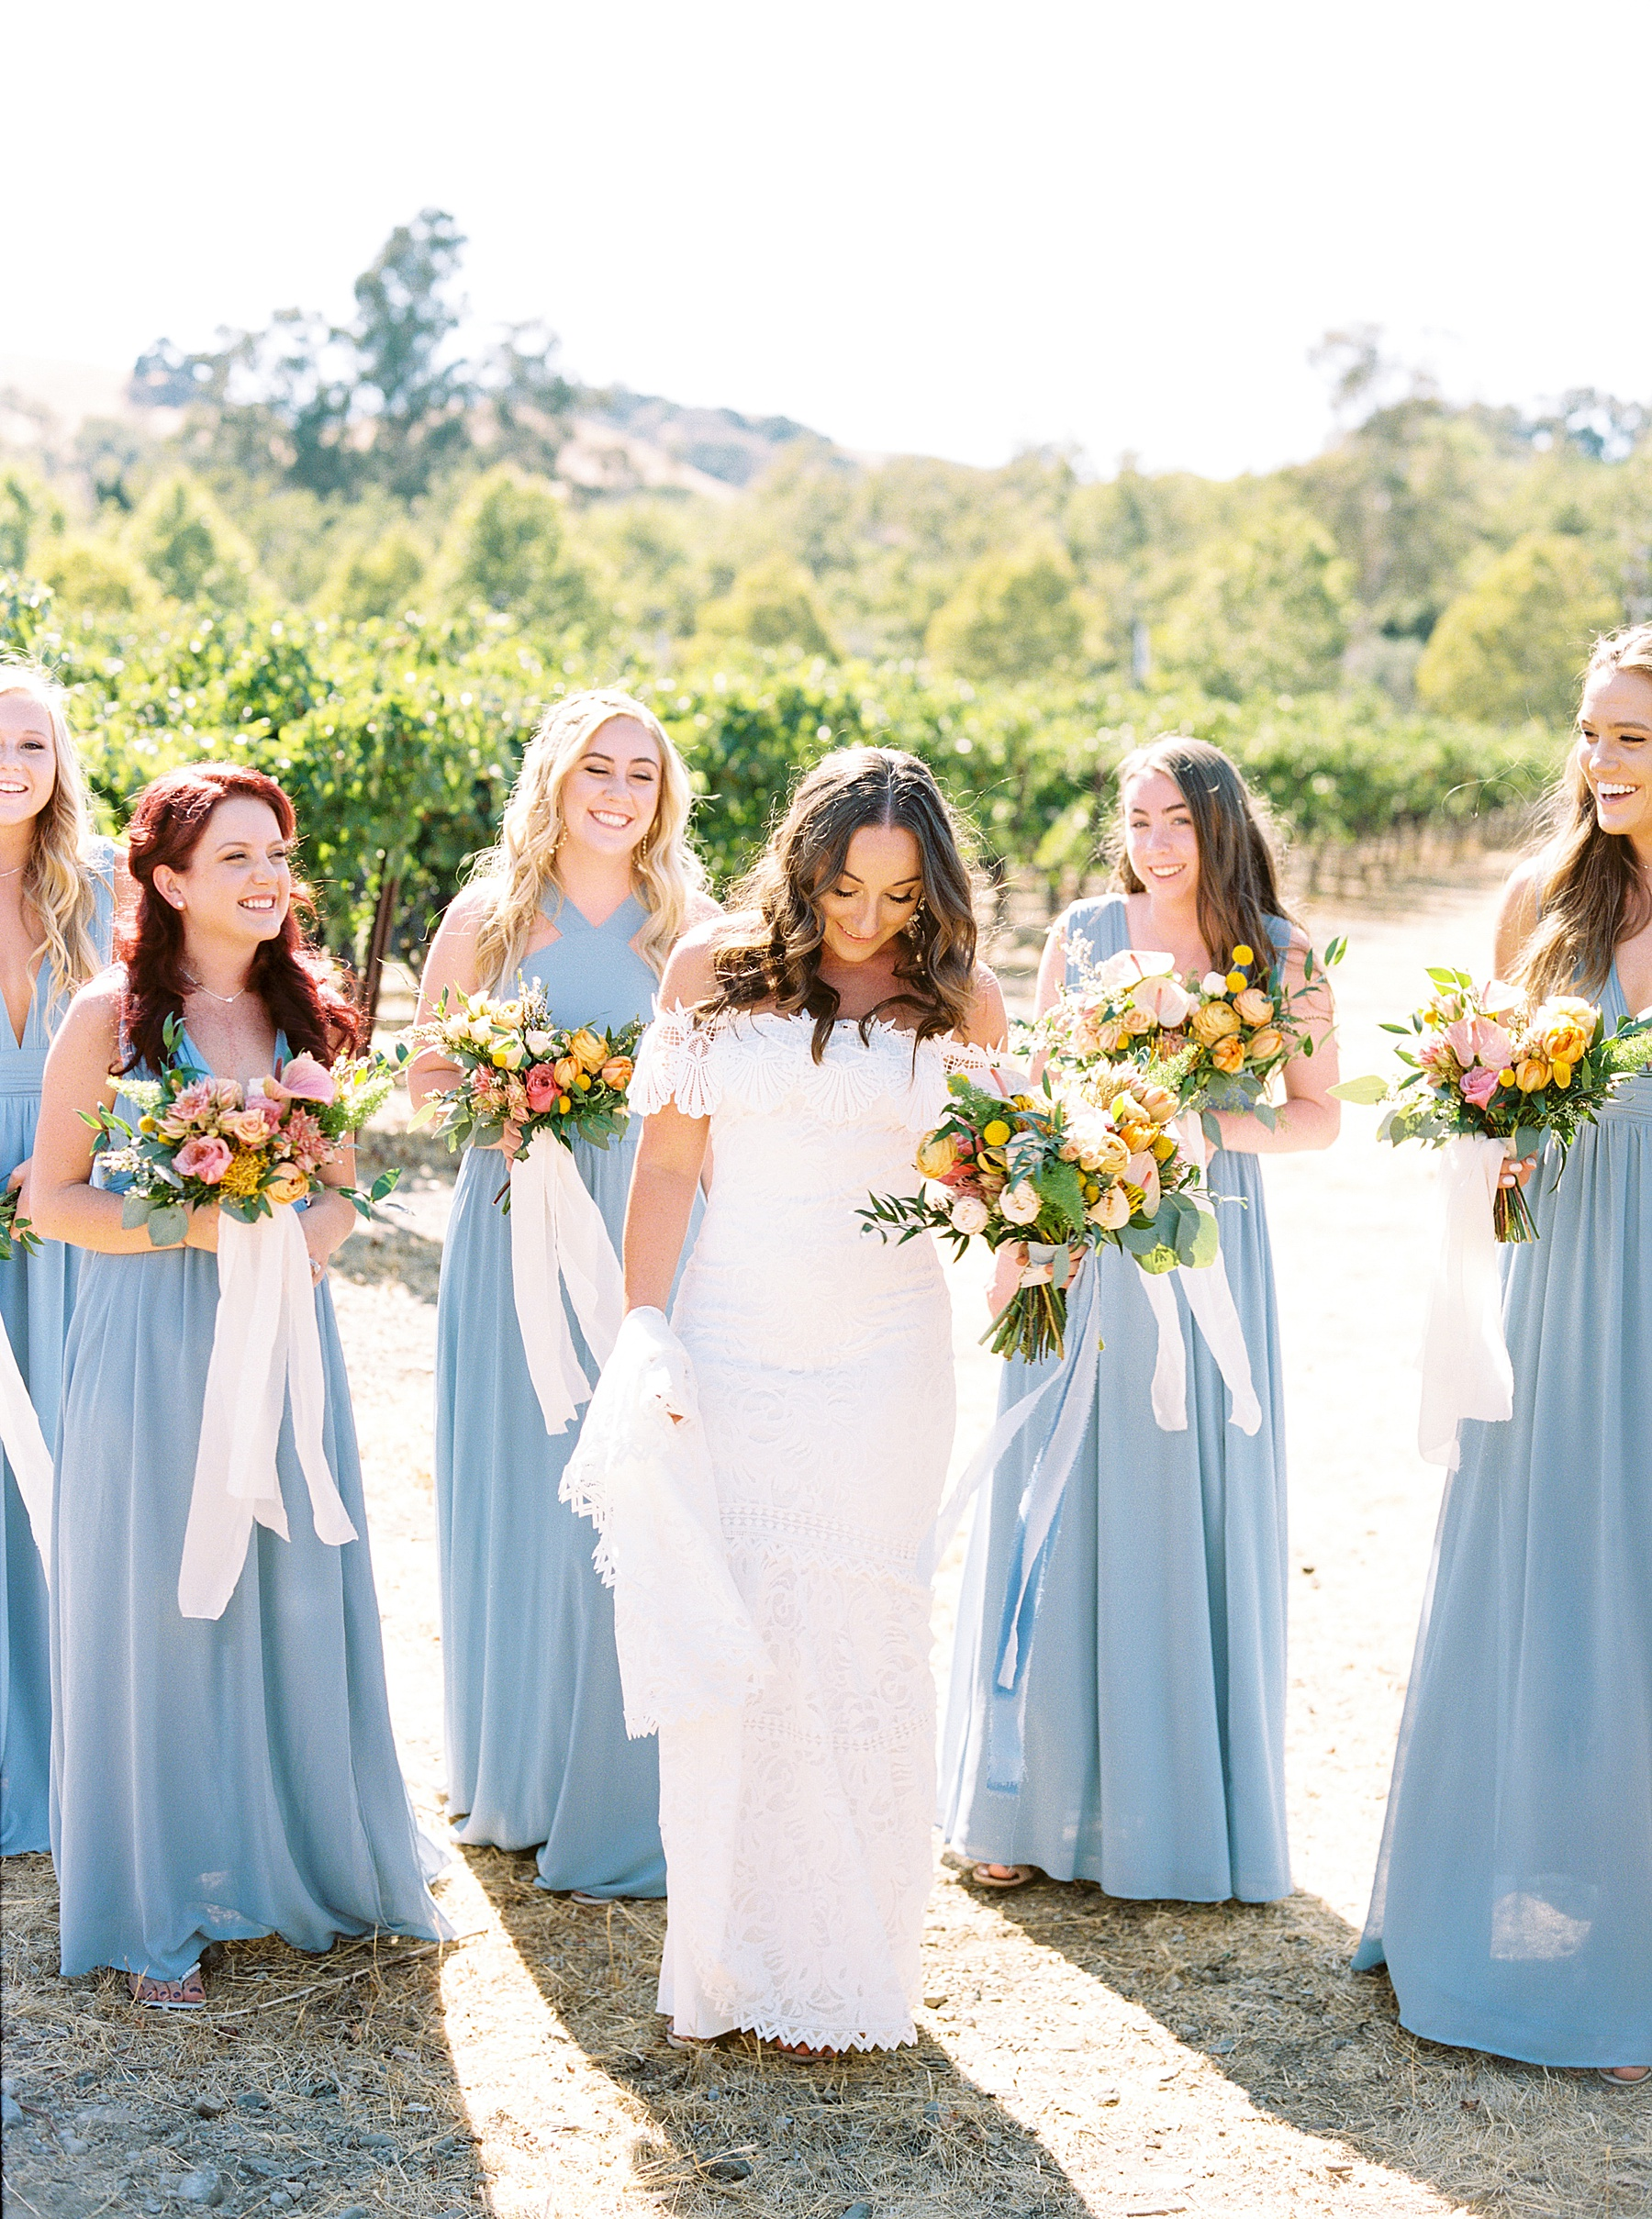 Wente Wedding with A Tropical Color Palette - Ashley & Mike - Featured on Inspired by This - Ashley Baumgartner_0004.jpg